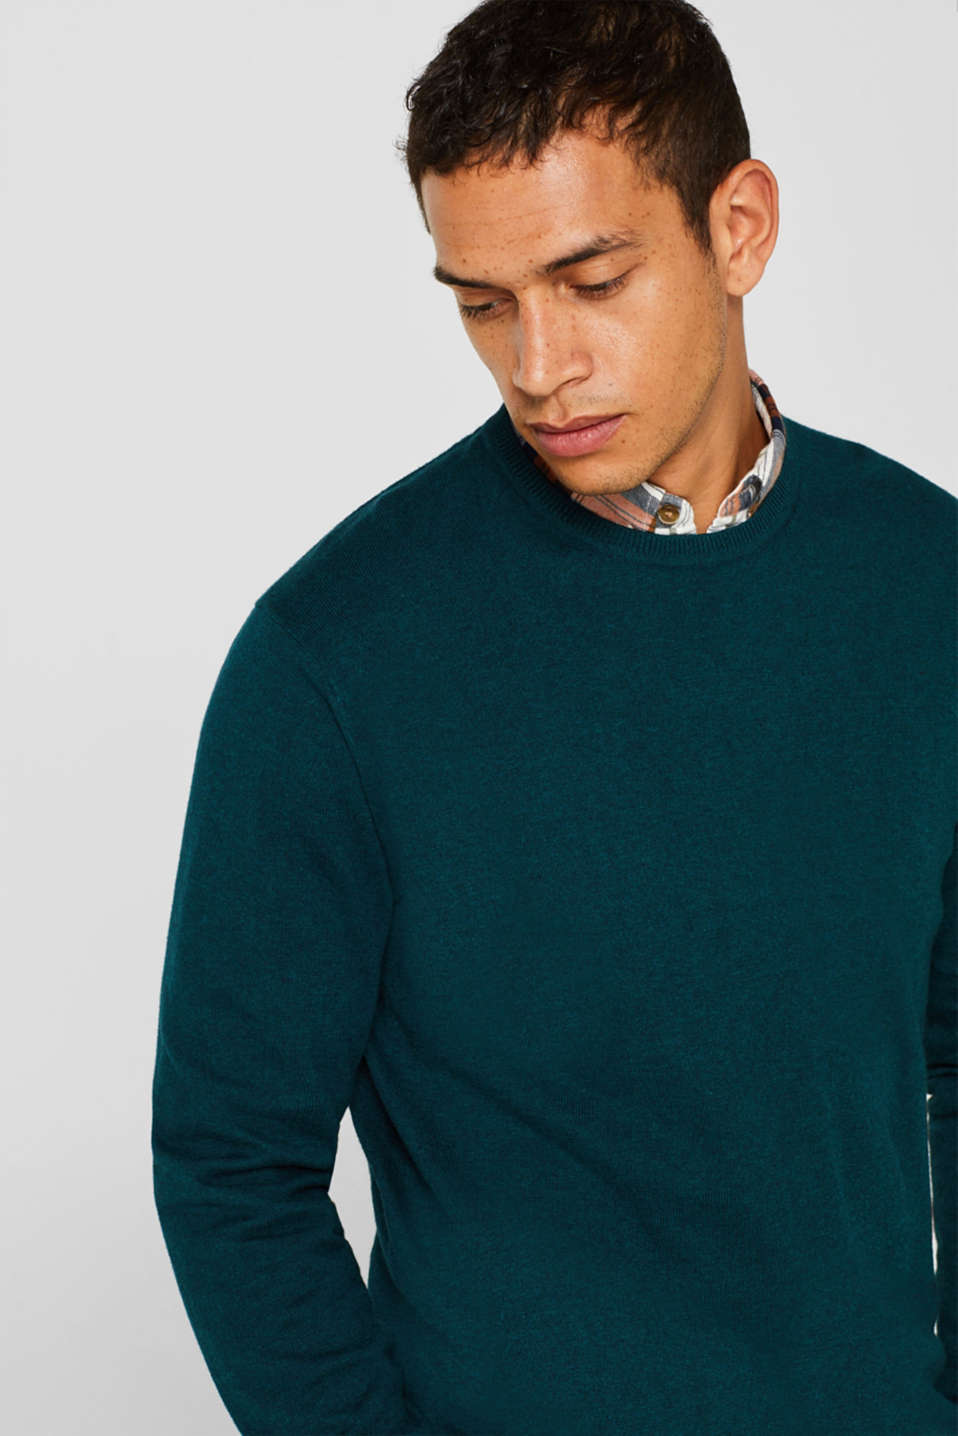 With cashmere: Basic style jumper, TEAL GREEN, detail image number 5